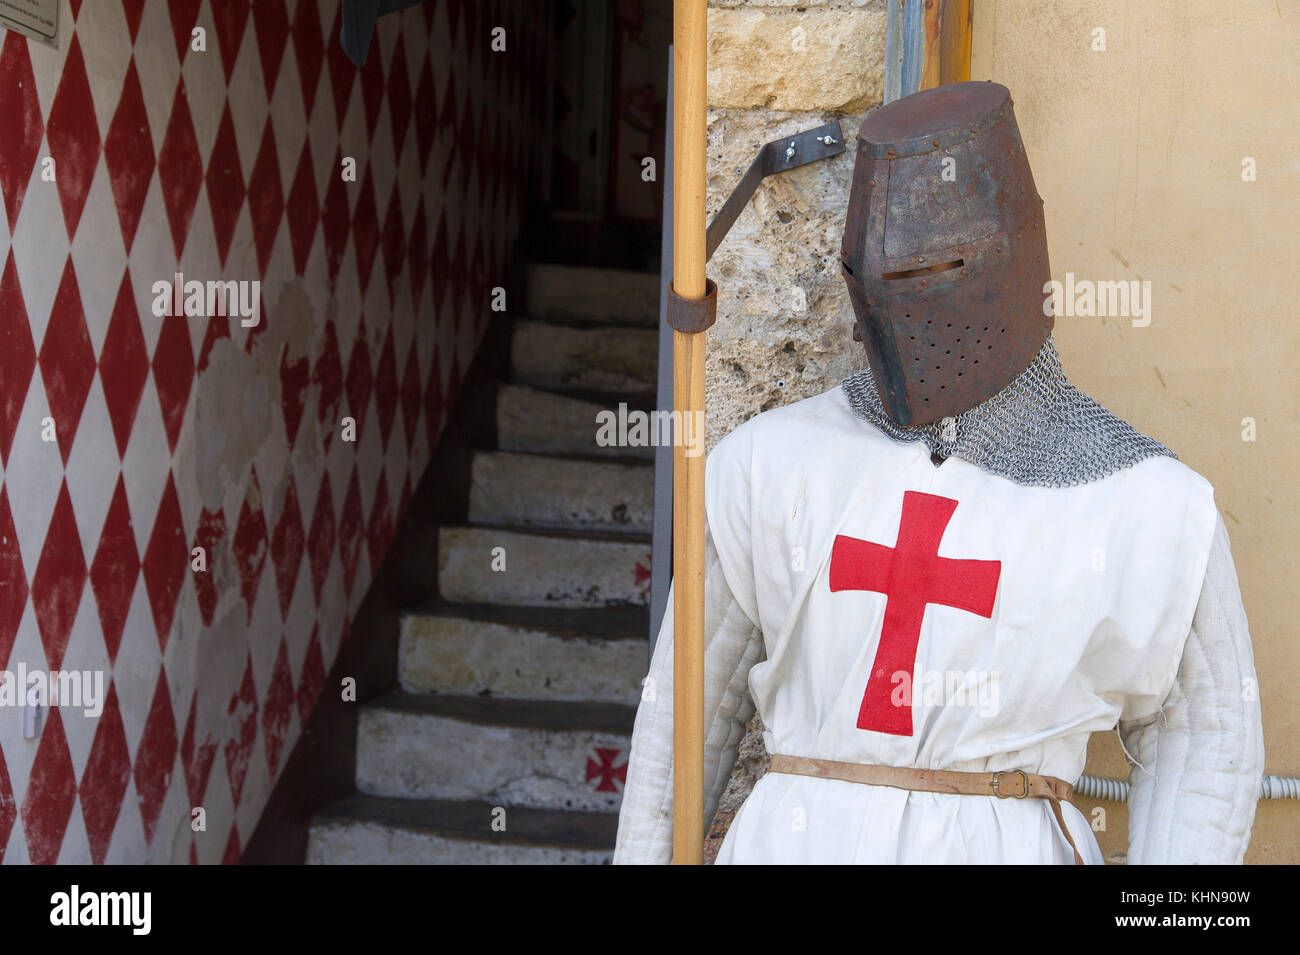 Museum of the history of the Knights Templars on Piazza Roma